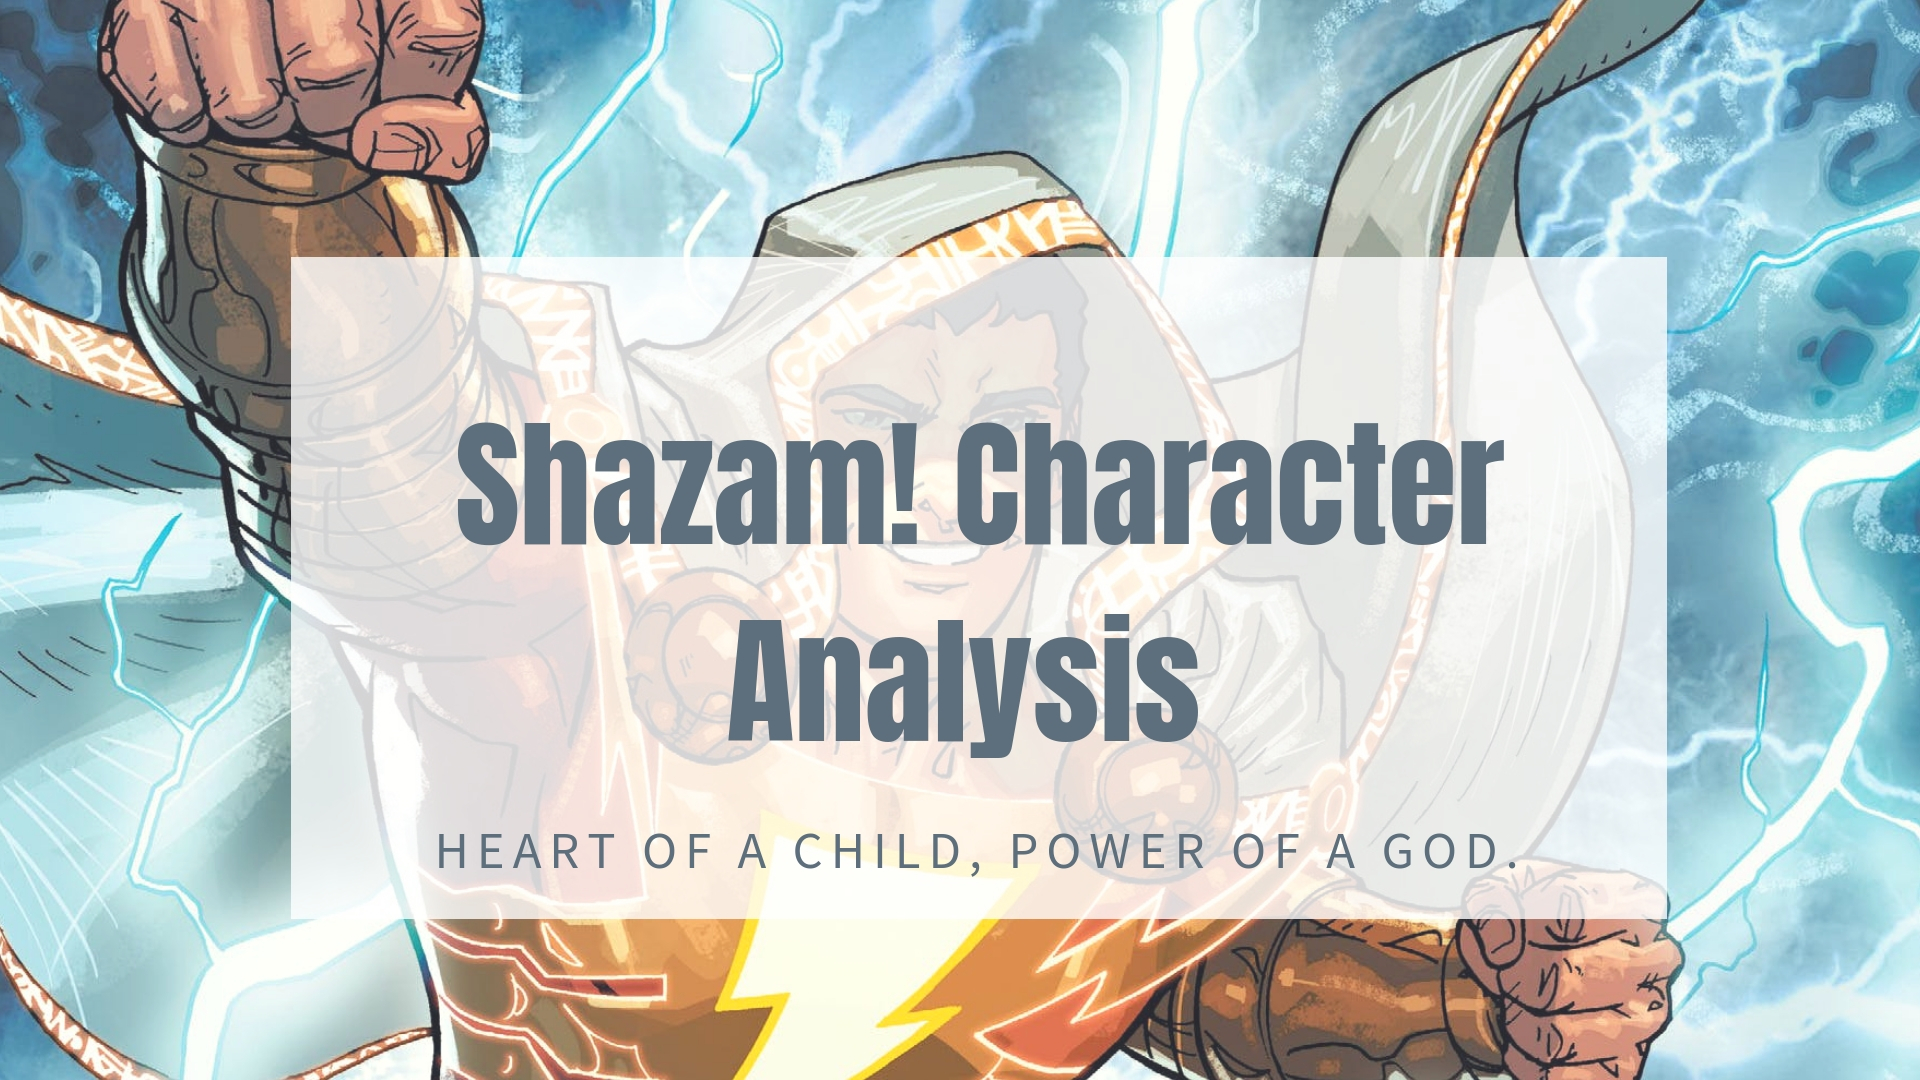 Shazam! Character Analysis: Heart of a Child, Power of a God